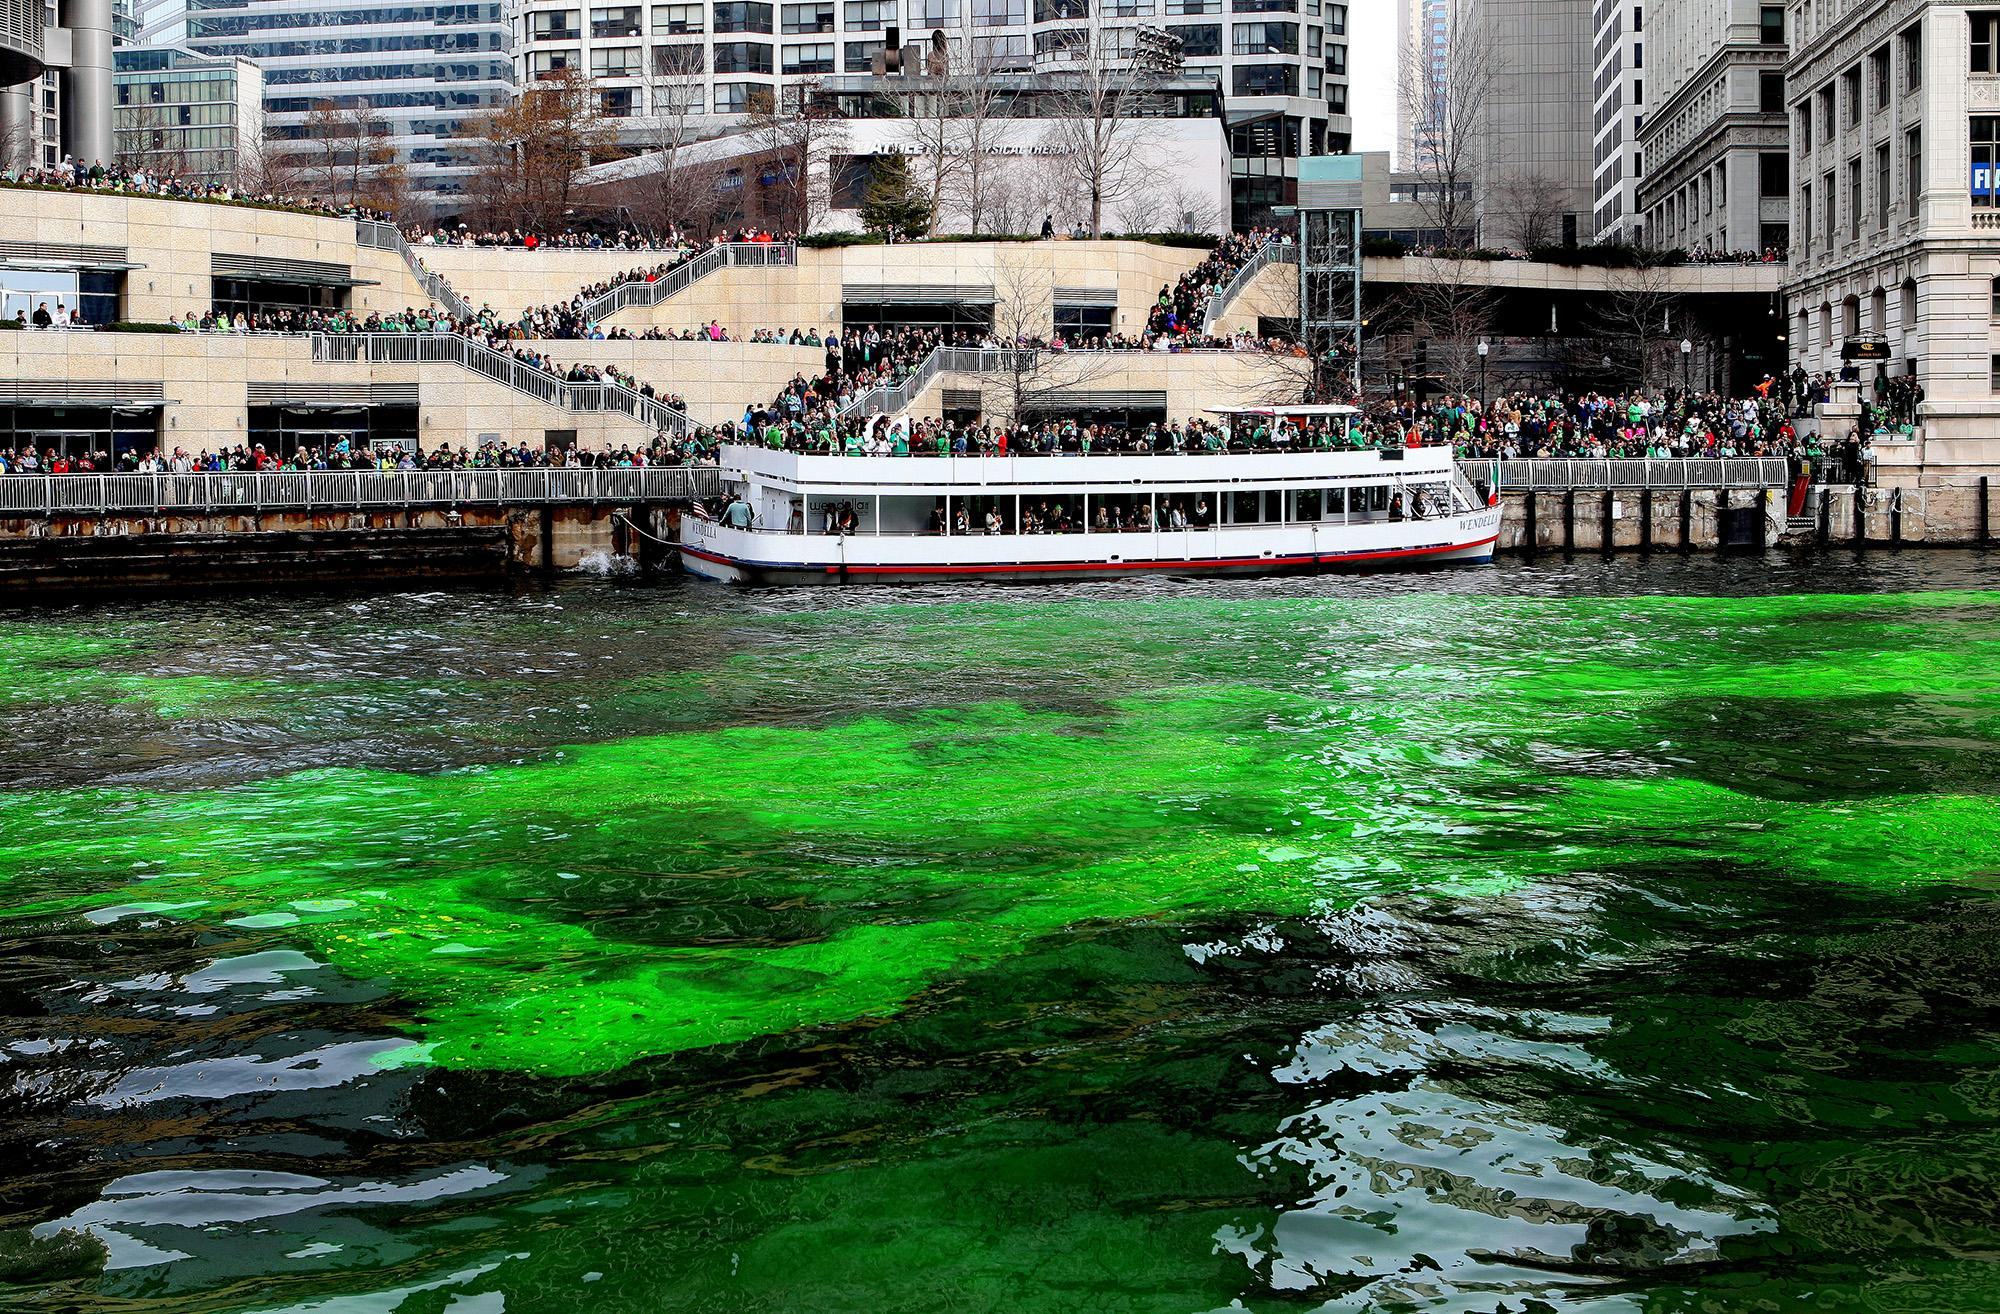 The Windy City Celebrates Its Annual Green Dyeing of the Chicago River for St. Patricks Day